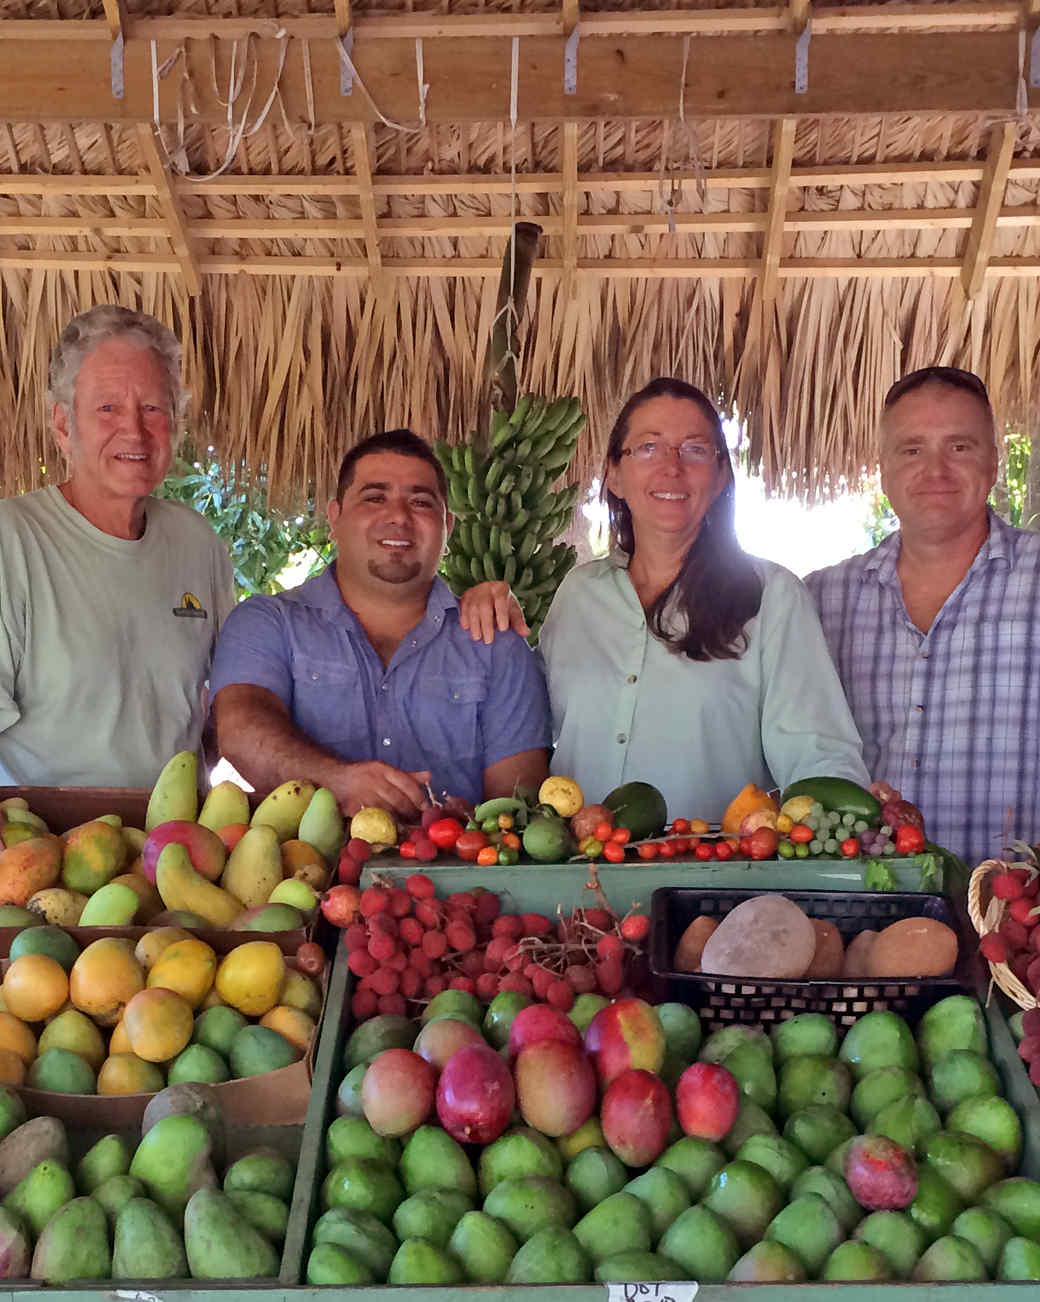 Pine Island Tropicals/FruitScapes: 2015 American Made Honoree